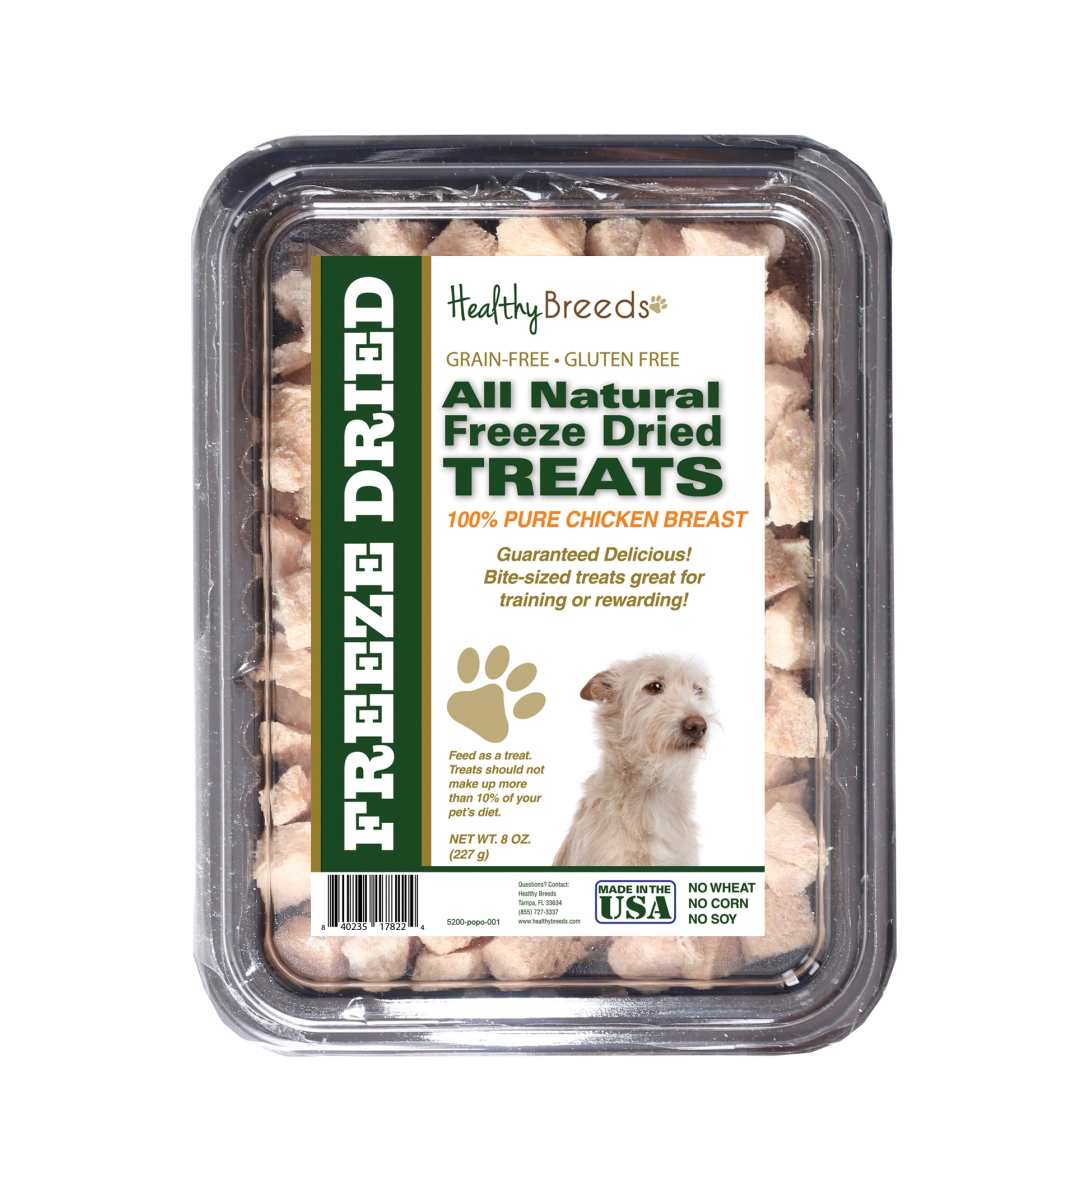 Healthy Breeds 840235178224 8 oz Portuguese Podengo Pequeno All Natural Freeze Dried Treats Chicken Breast